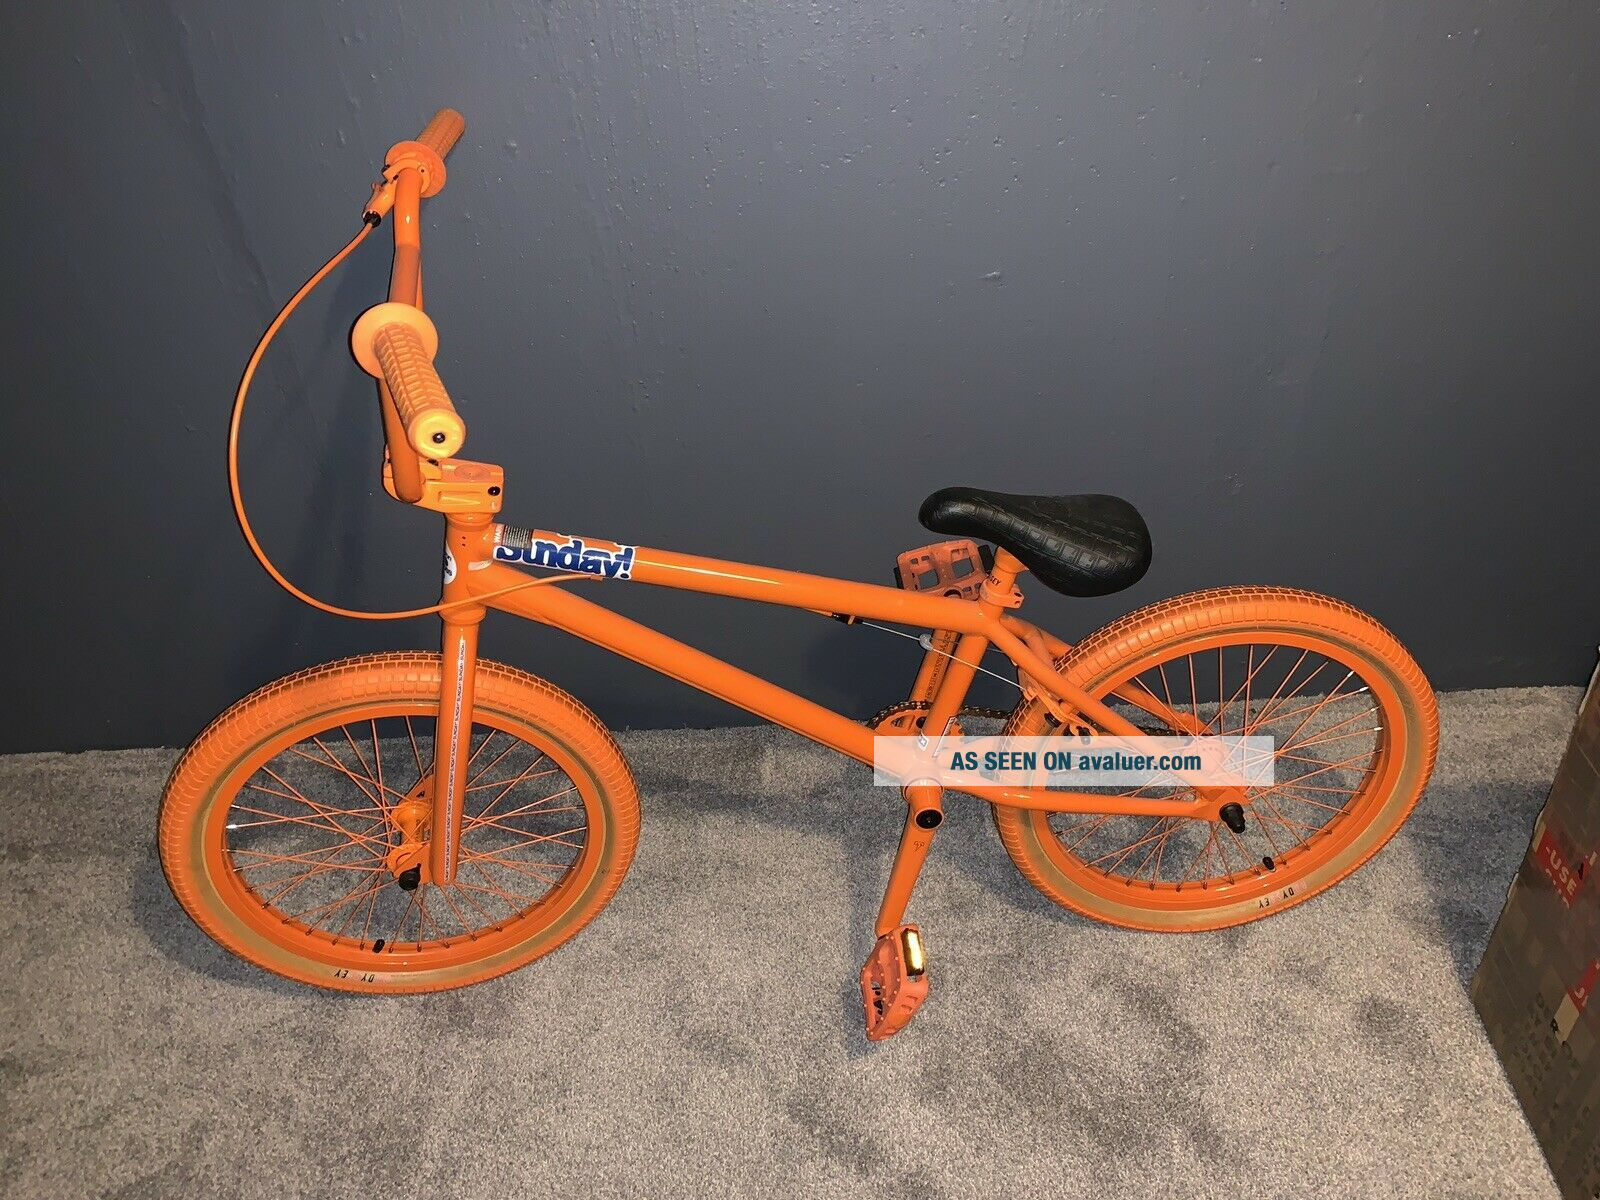 2012 Sunday Aaron Ross Orange Soda Bonus Bike Minty Rare Bmx